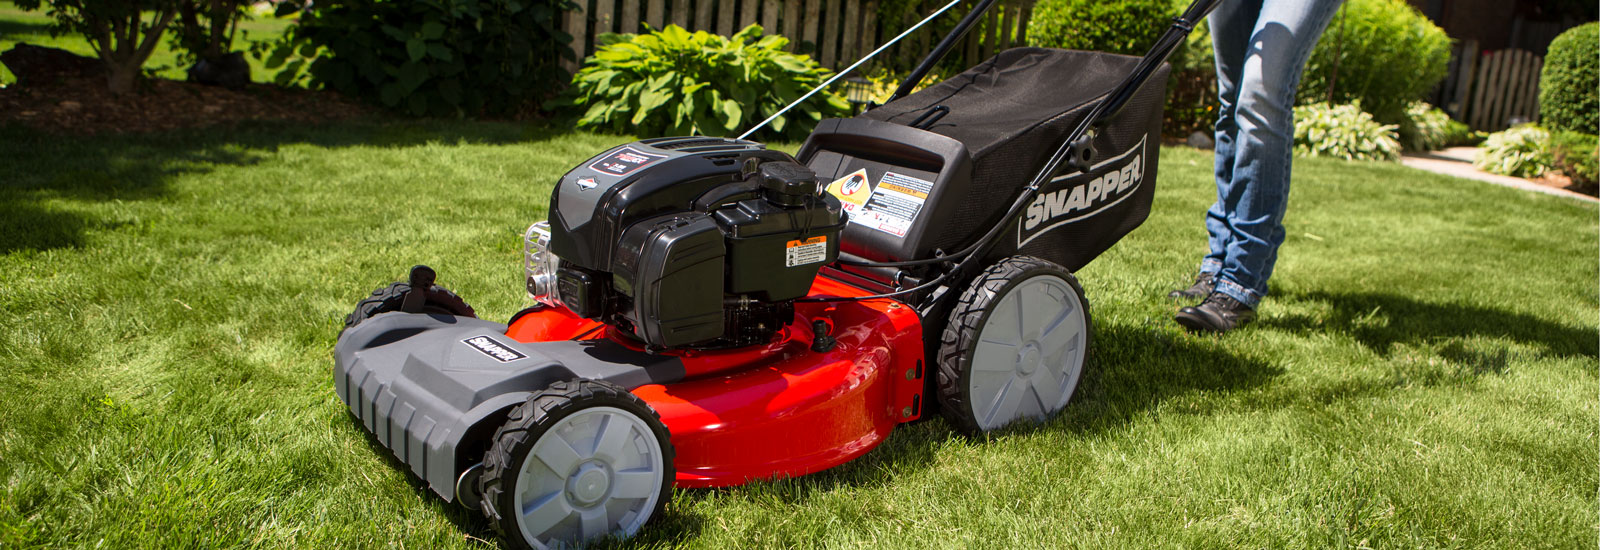 Close up side view of a red Snapper push mower on green grass.